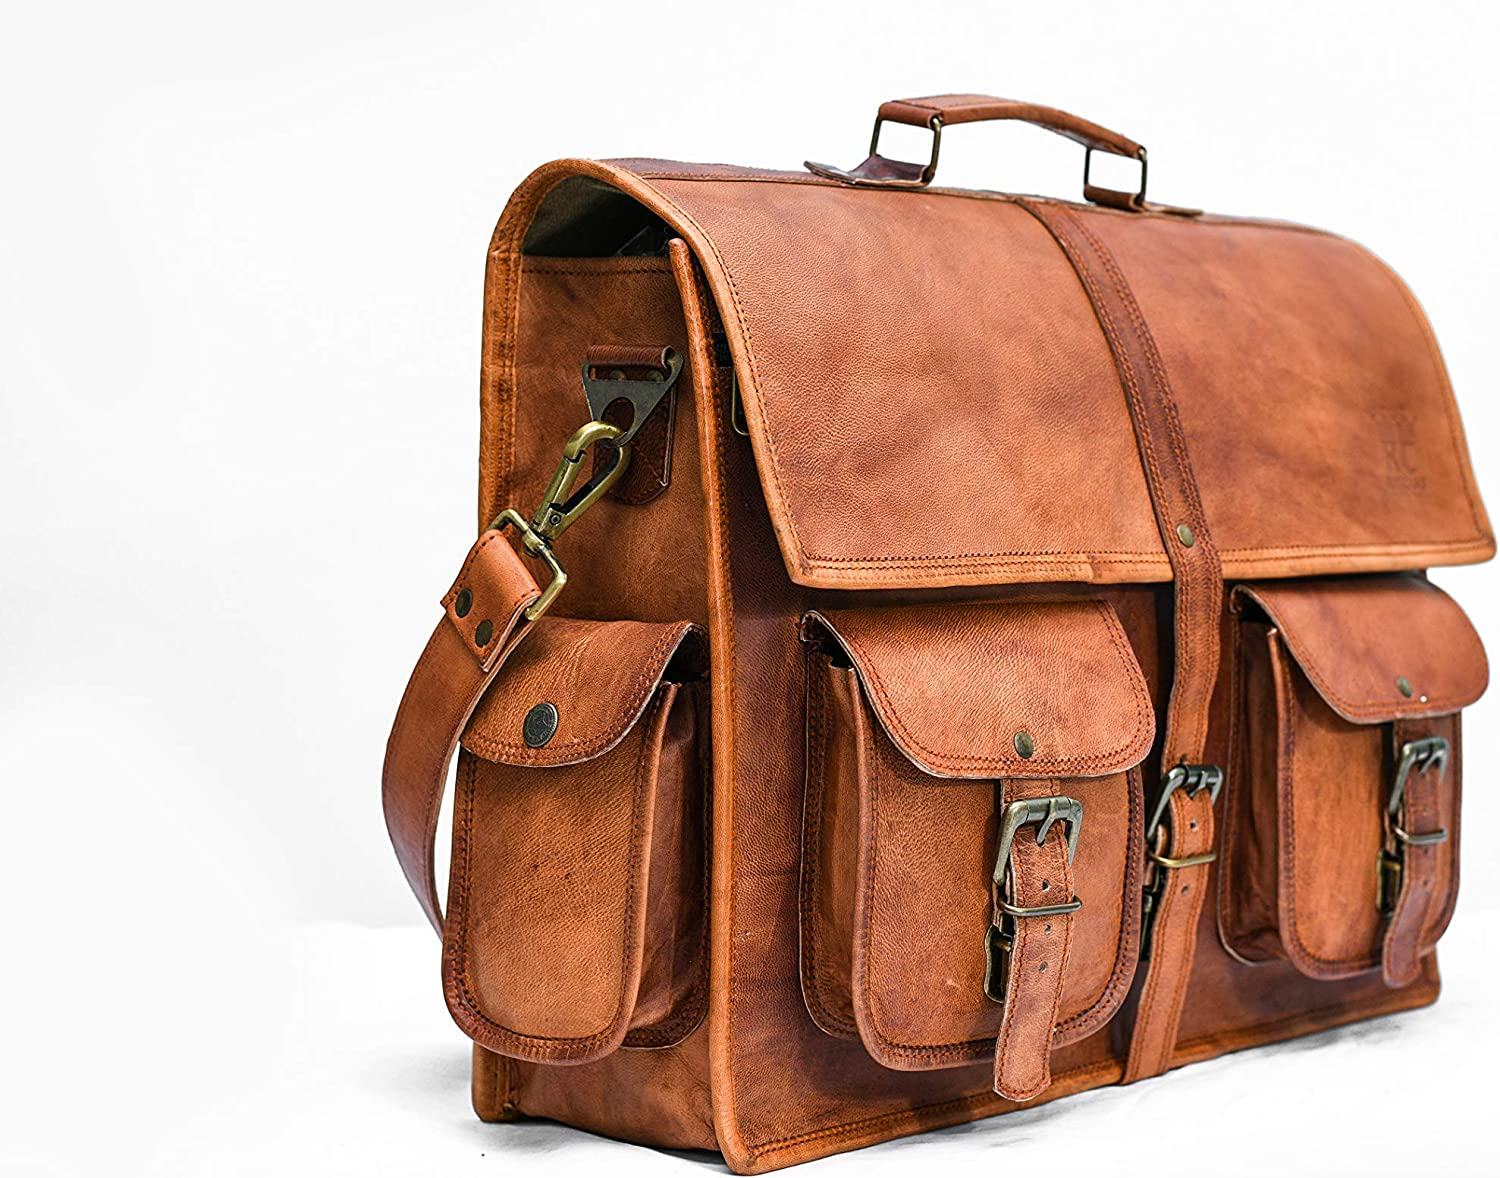 Leather briefcase laptop messenger bag satchel 16 Inch Handmade Leather bag from Rut Chas, Brown,